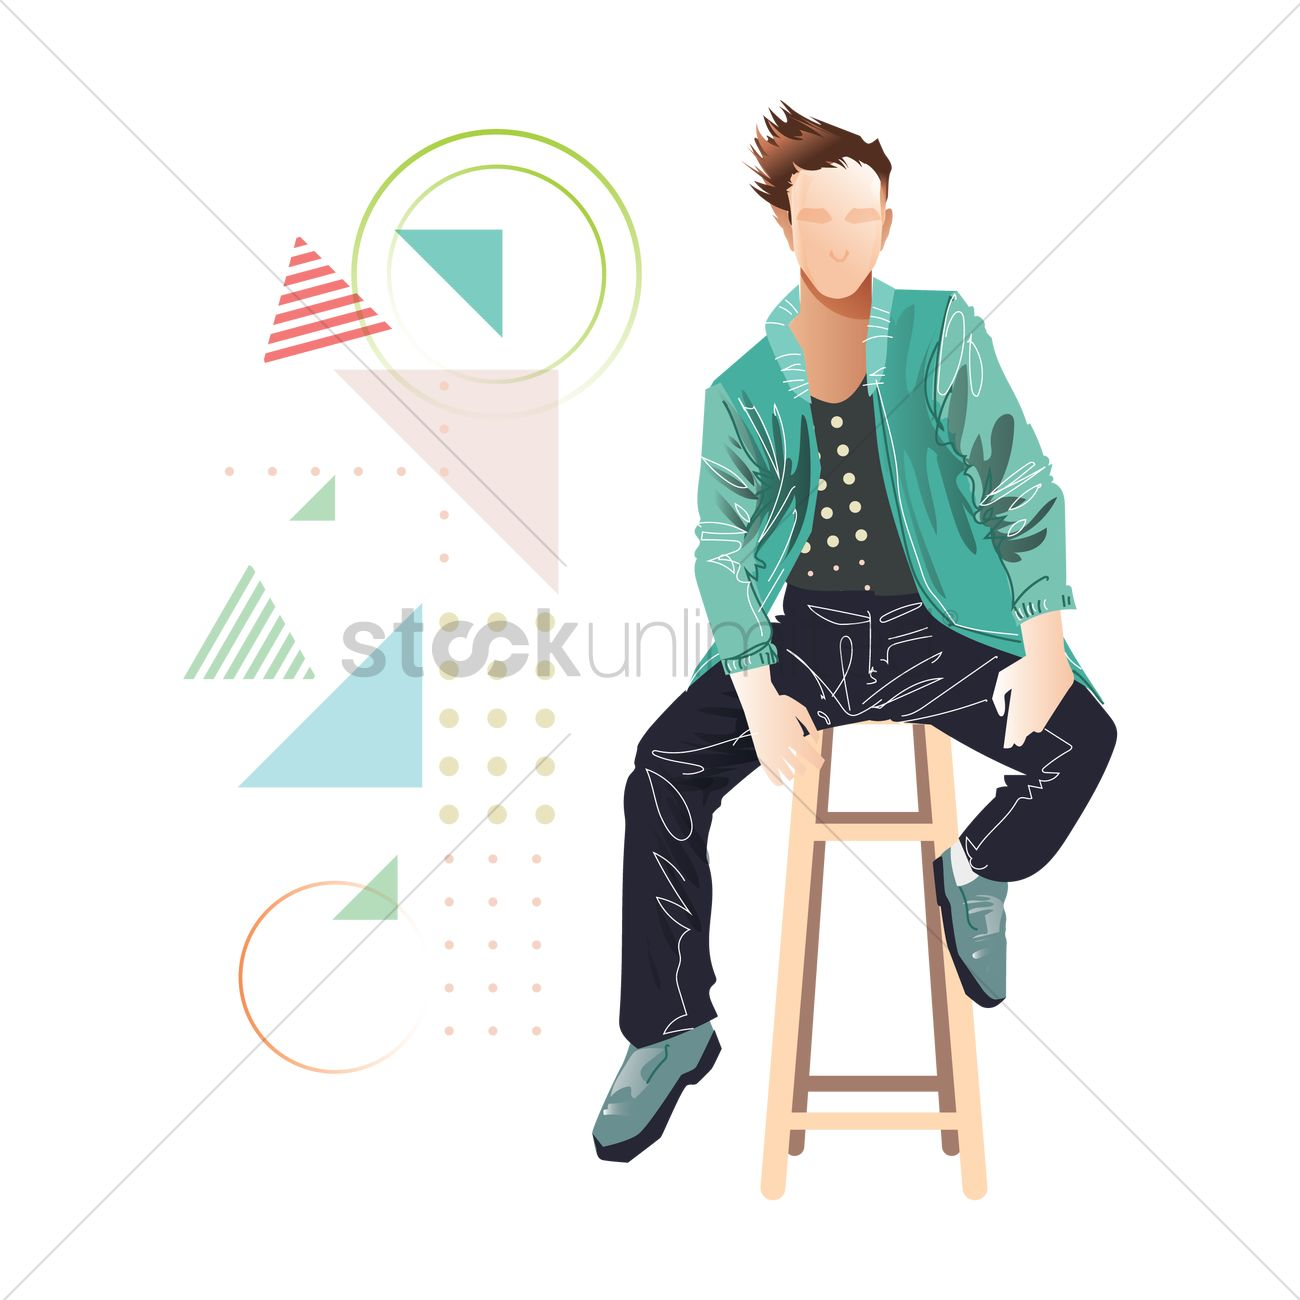 d88625a0 Man in casual wear Vector Image - 1959688   StockUnlimited